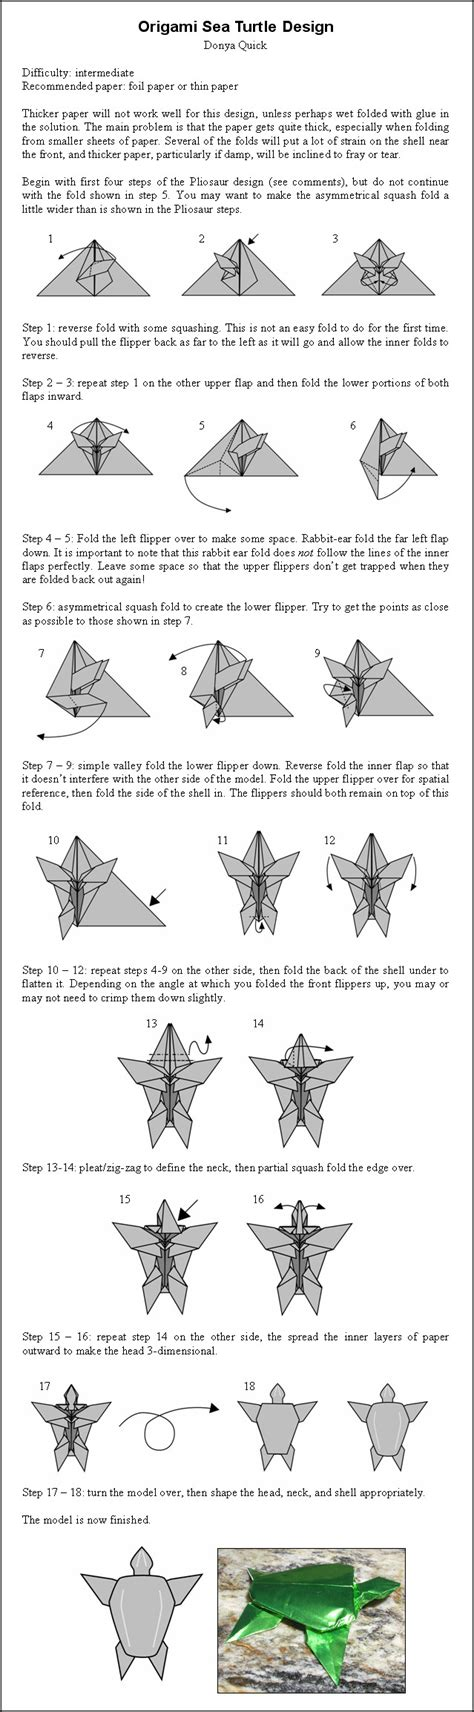 How To Make An Origami Turtle - origami sea turtle instr by donyaquick on deviantart